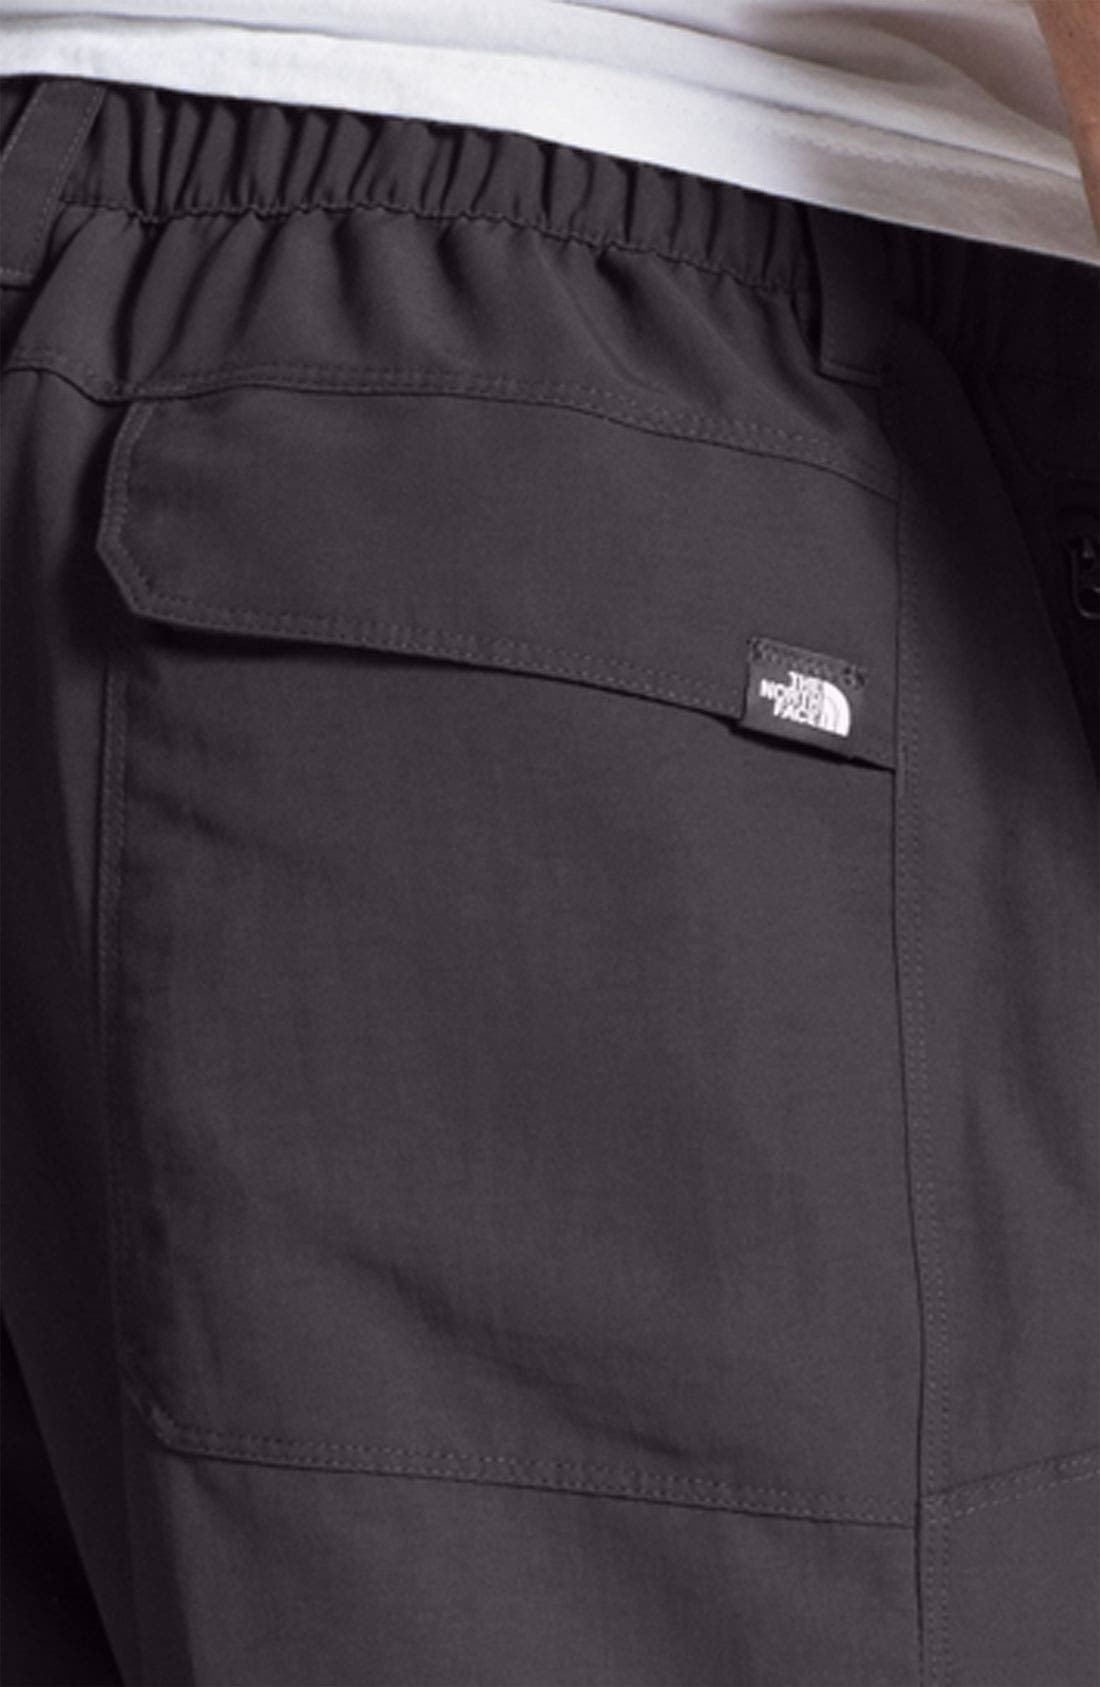 Alternate Image 3  - The North Face 'Paramount Peak' Convertible Pants